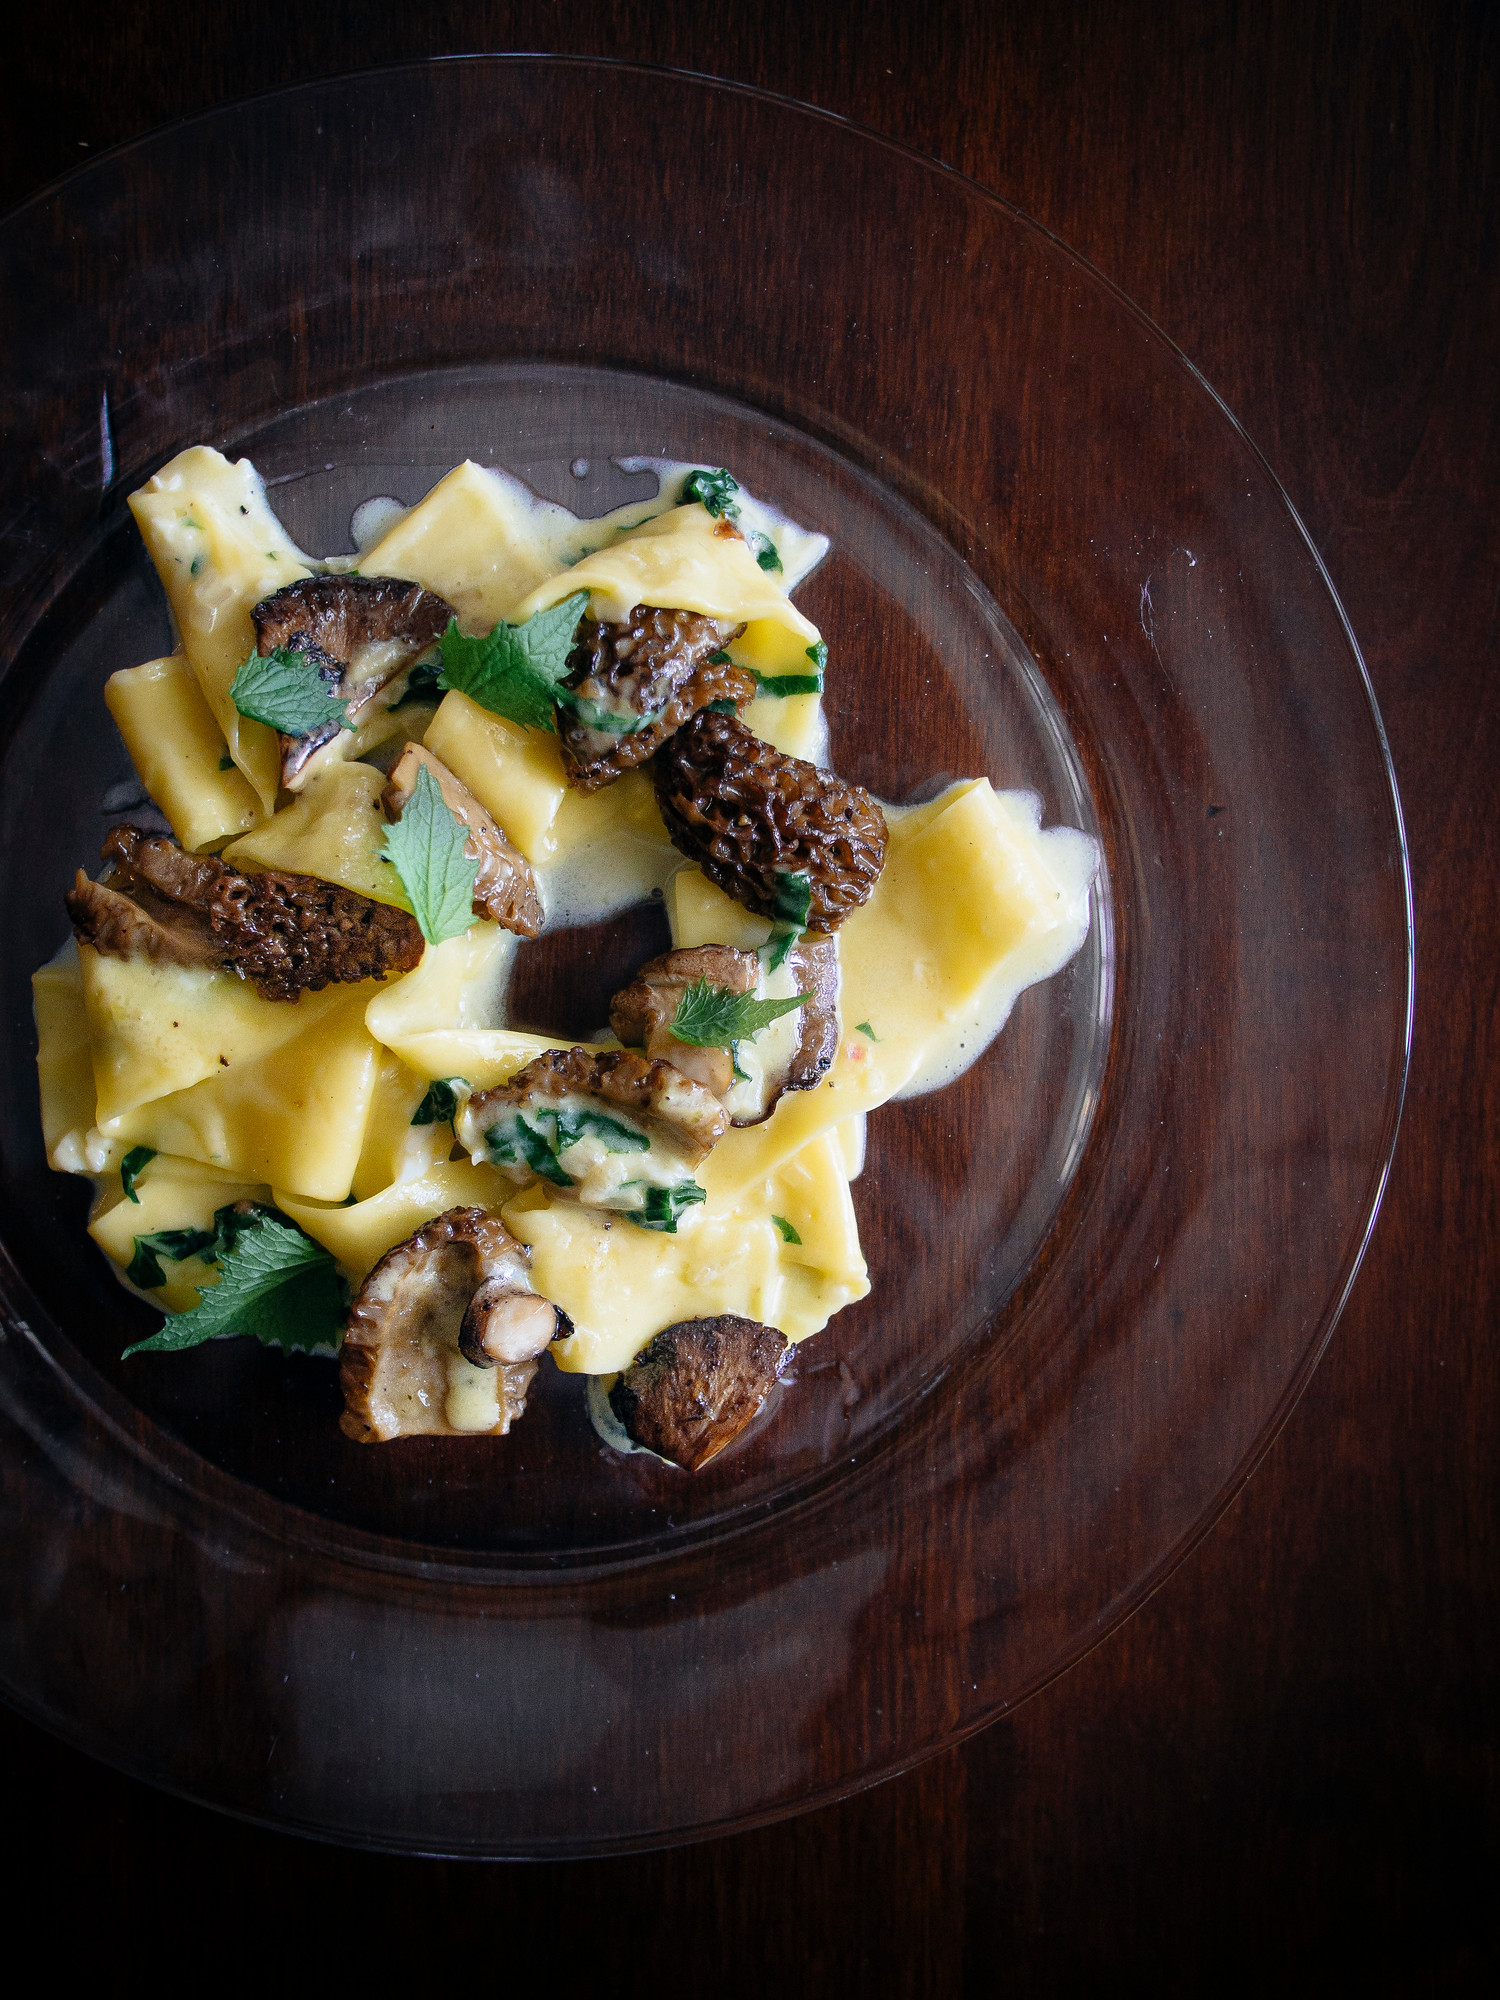 Popular pasta dishes: This easy morel pasta uses foraged morel mushrooms.